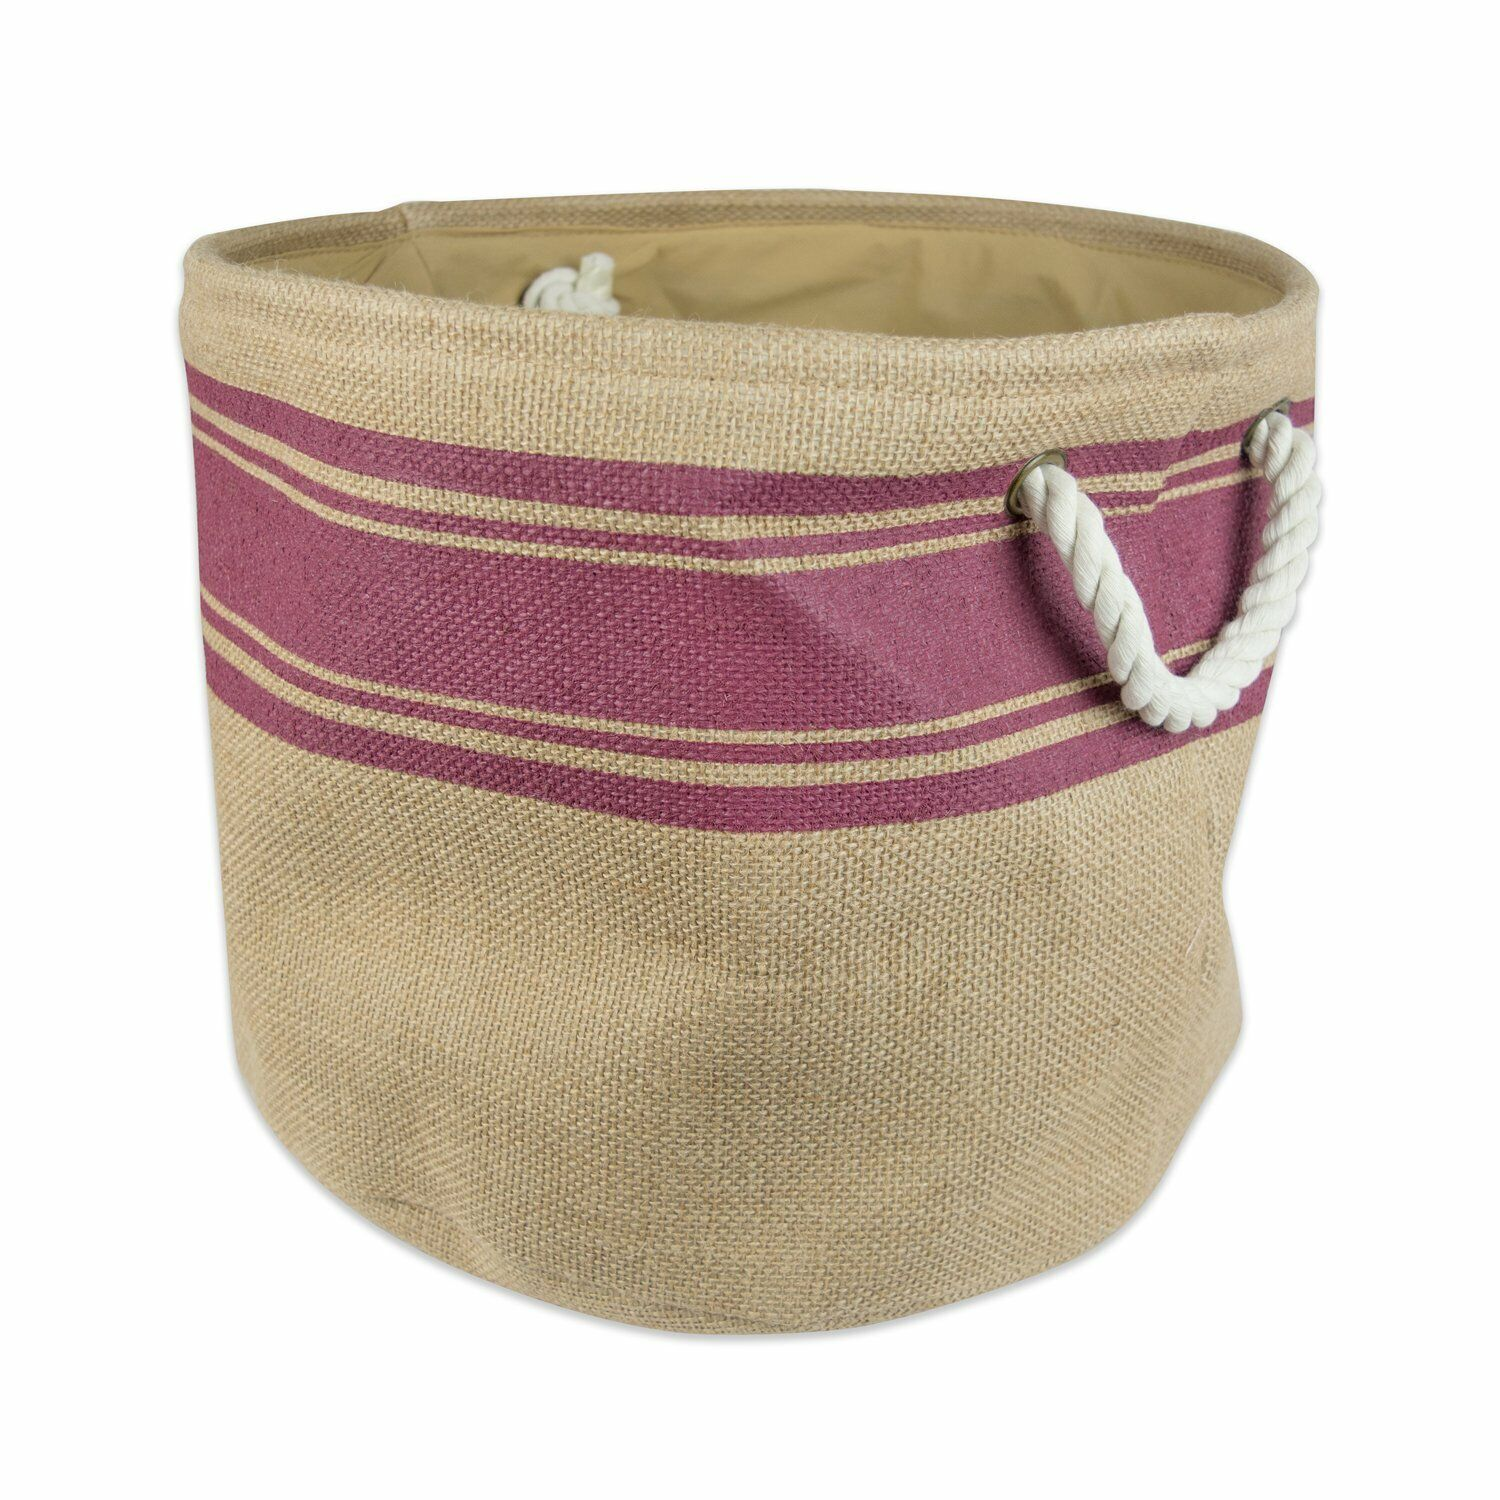 DII Collapsible Burlap Storage Basket or Laundry Bin 15x12 i